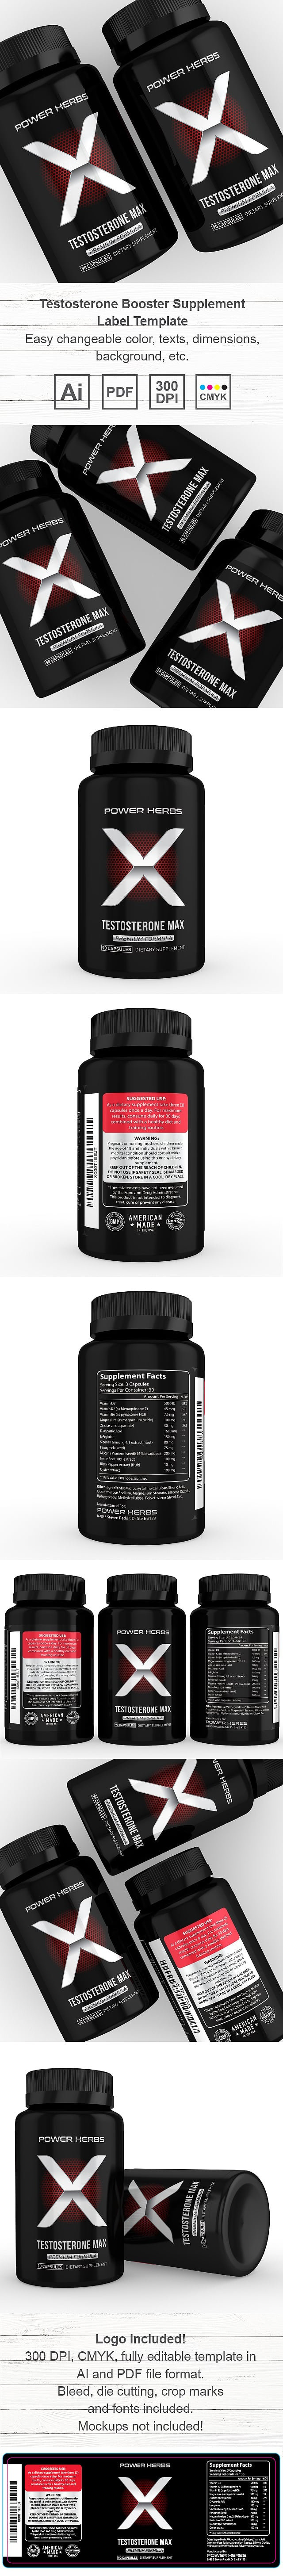 Testosterone Booster Supplement Label Template